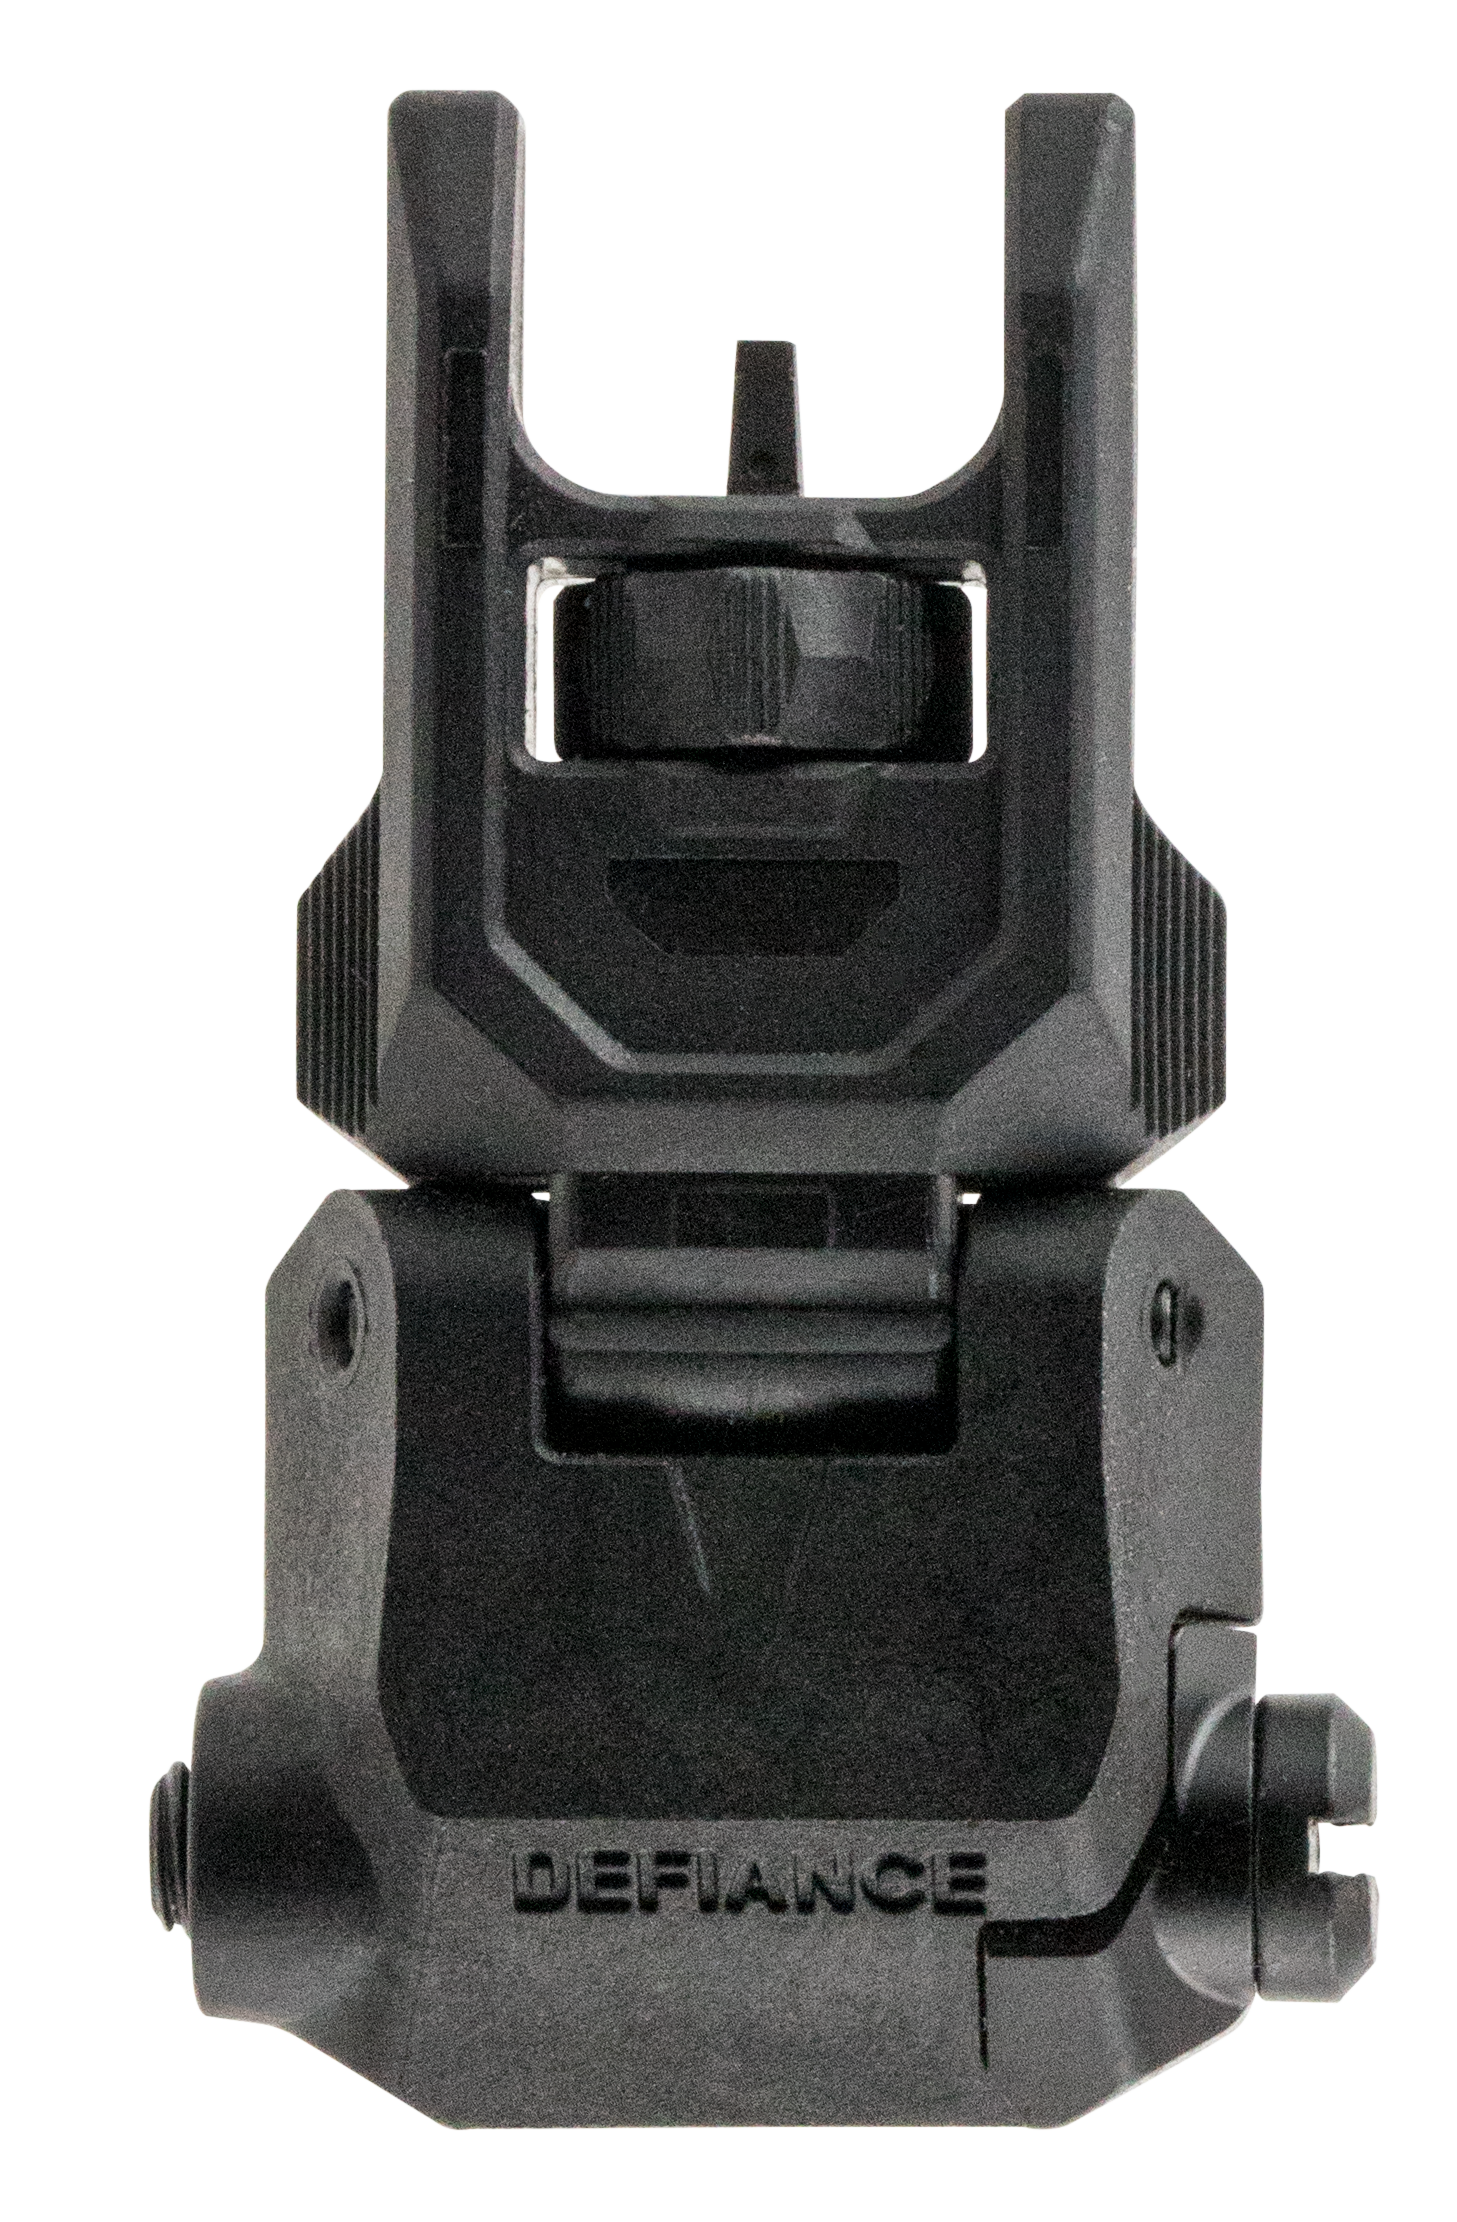 Kriss USA DAPFSBL00 Defiance Front Flip-Up Sight - Front AR Rifle Polymer Black